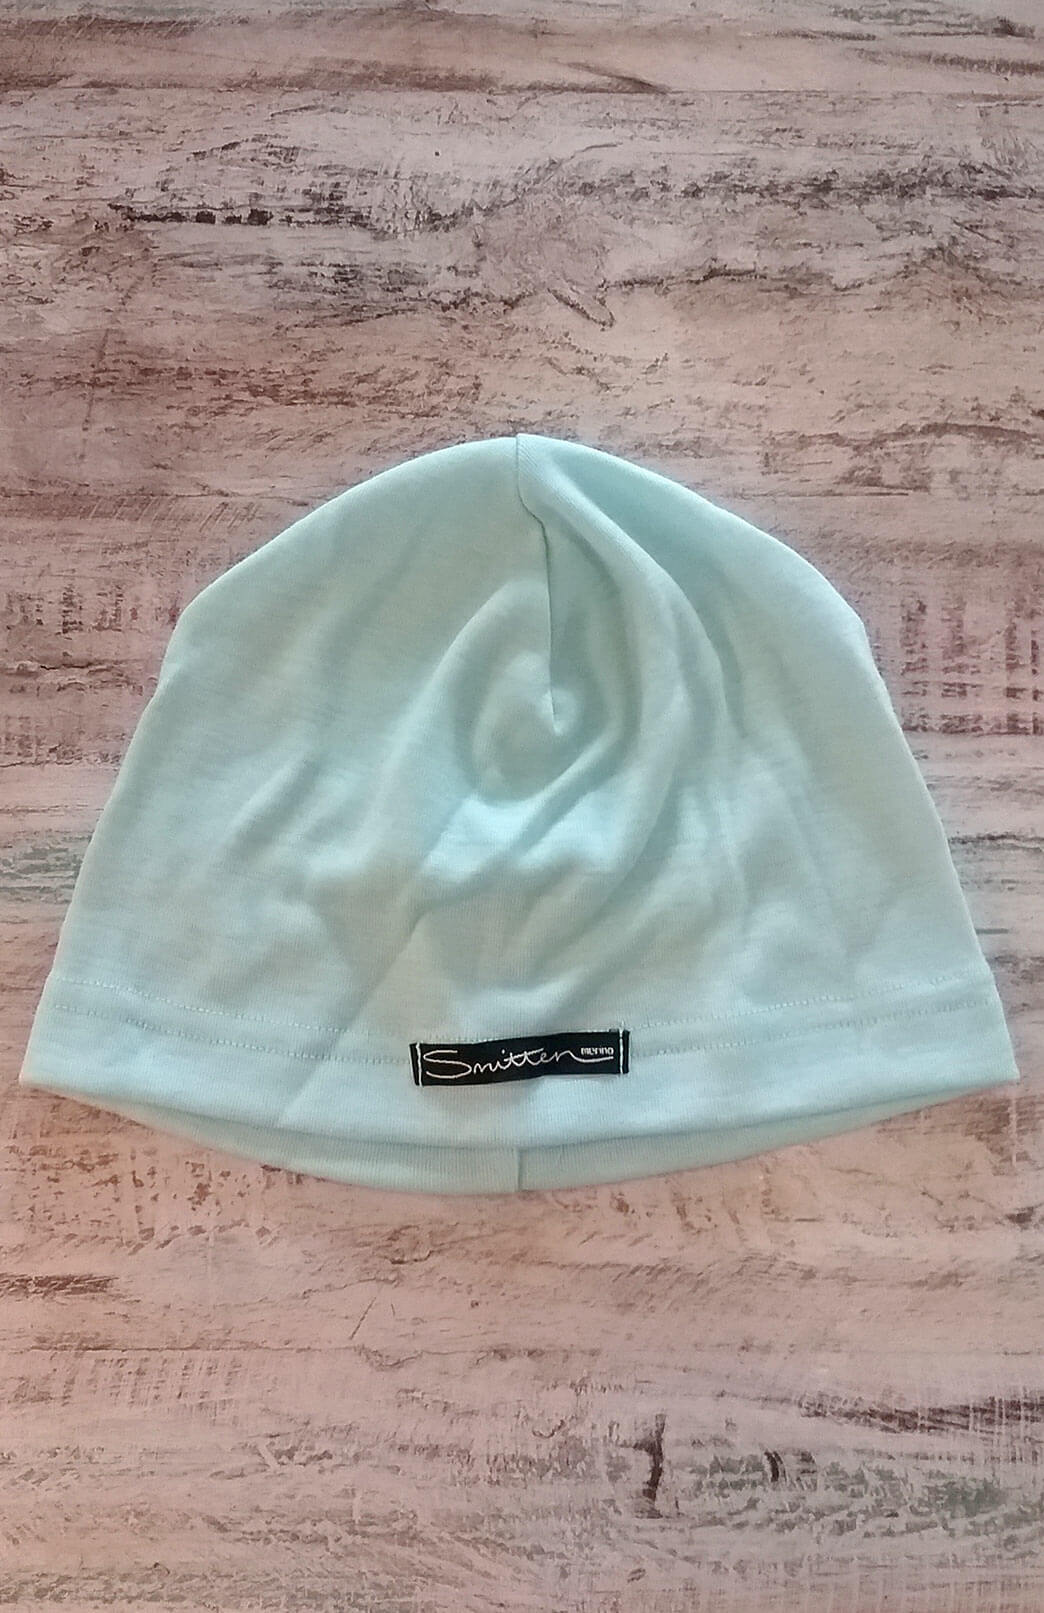 Lightweight Beanie - Lightweight Superfine Activewear and Fashion Beanie - Smitten Merino Tasmania Australia